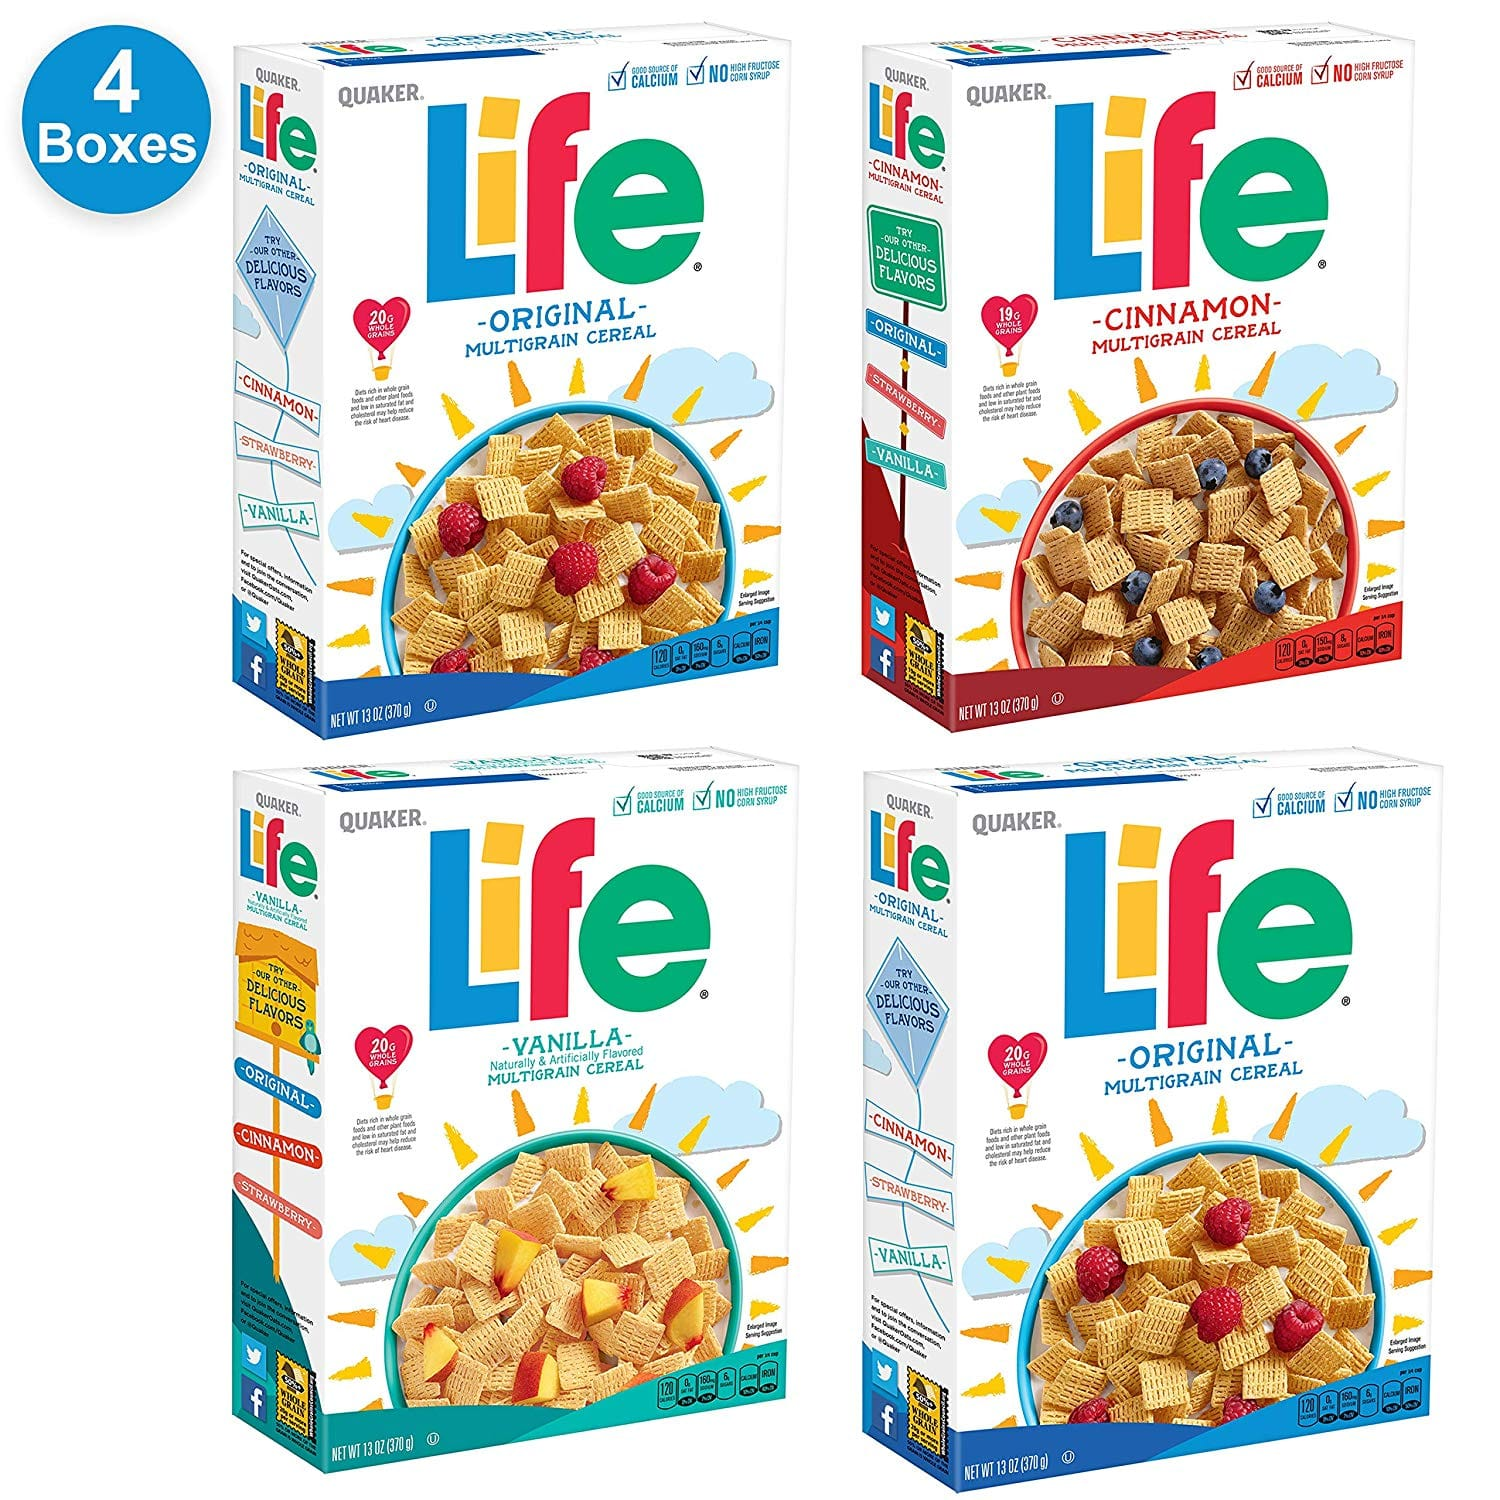 4 Pack Quaker Life Breakfast Cereal, 3 Flavor Variety for $7.95 after 20% Coupon and S&S via Amazon